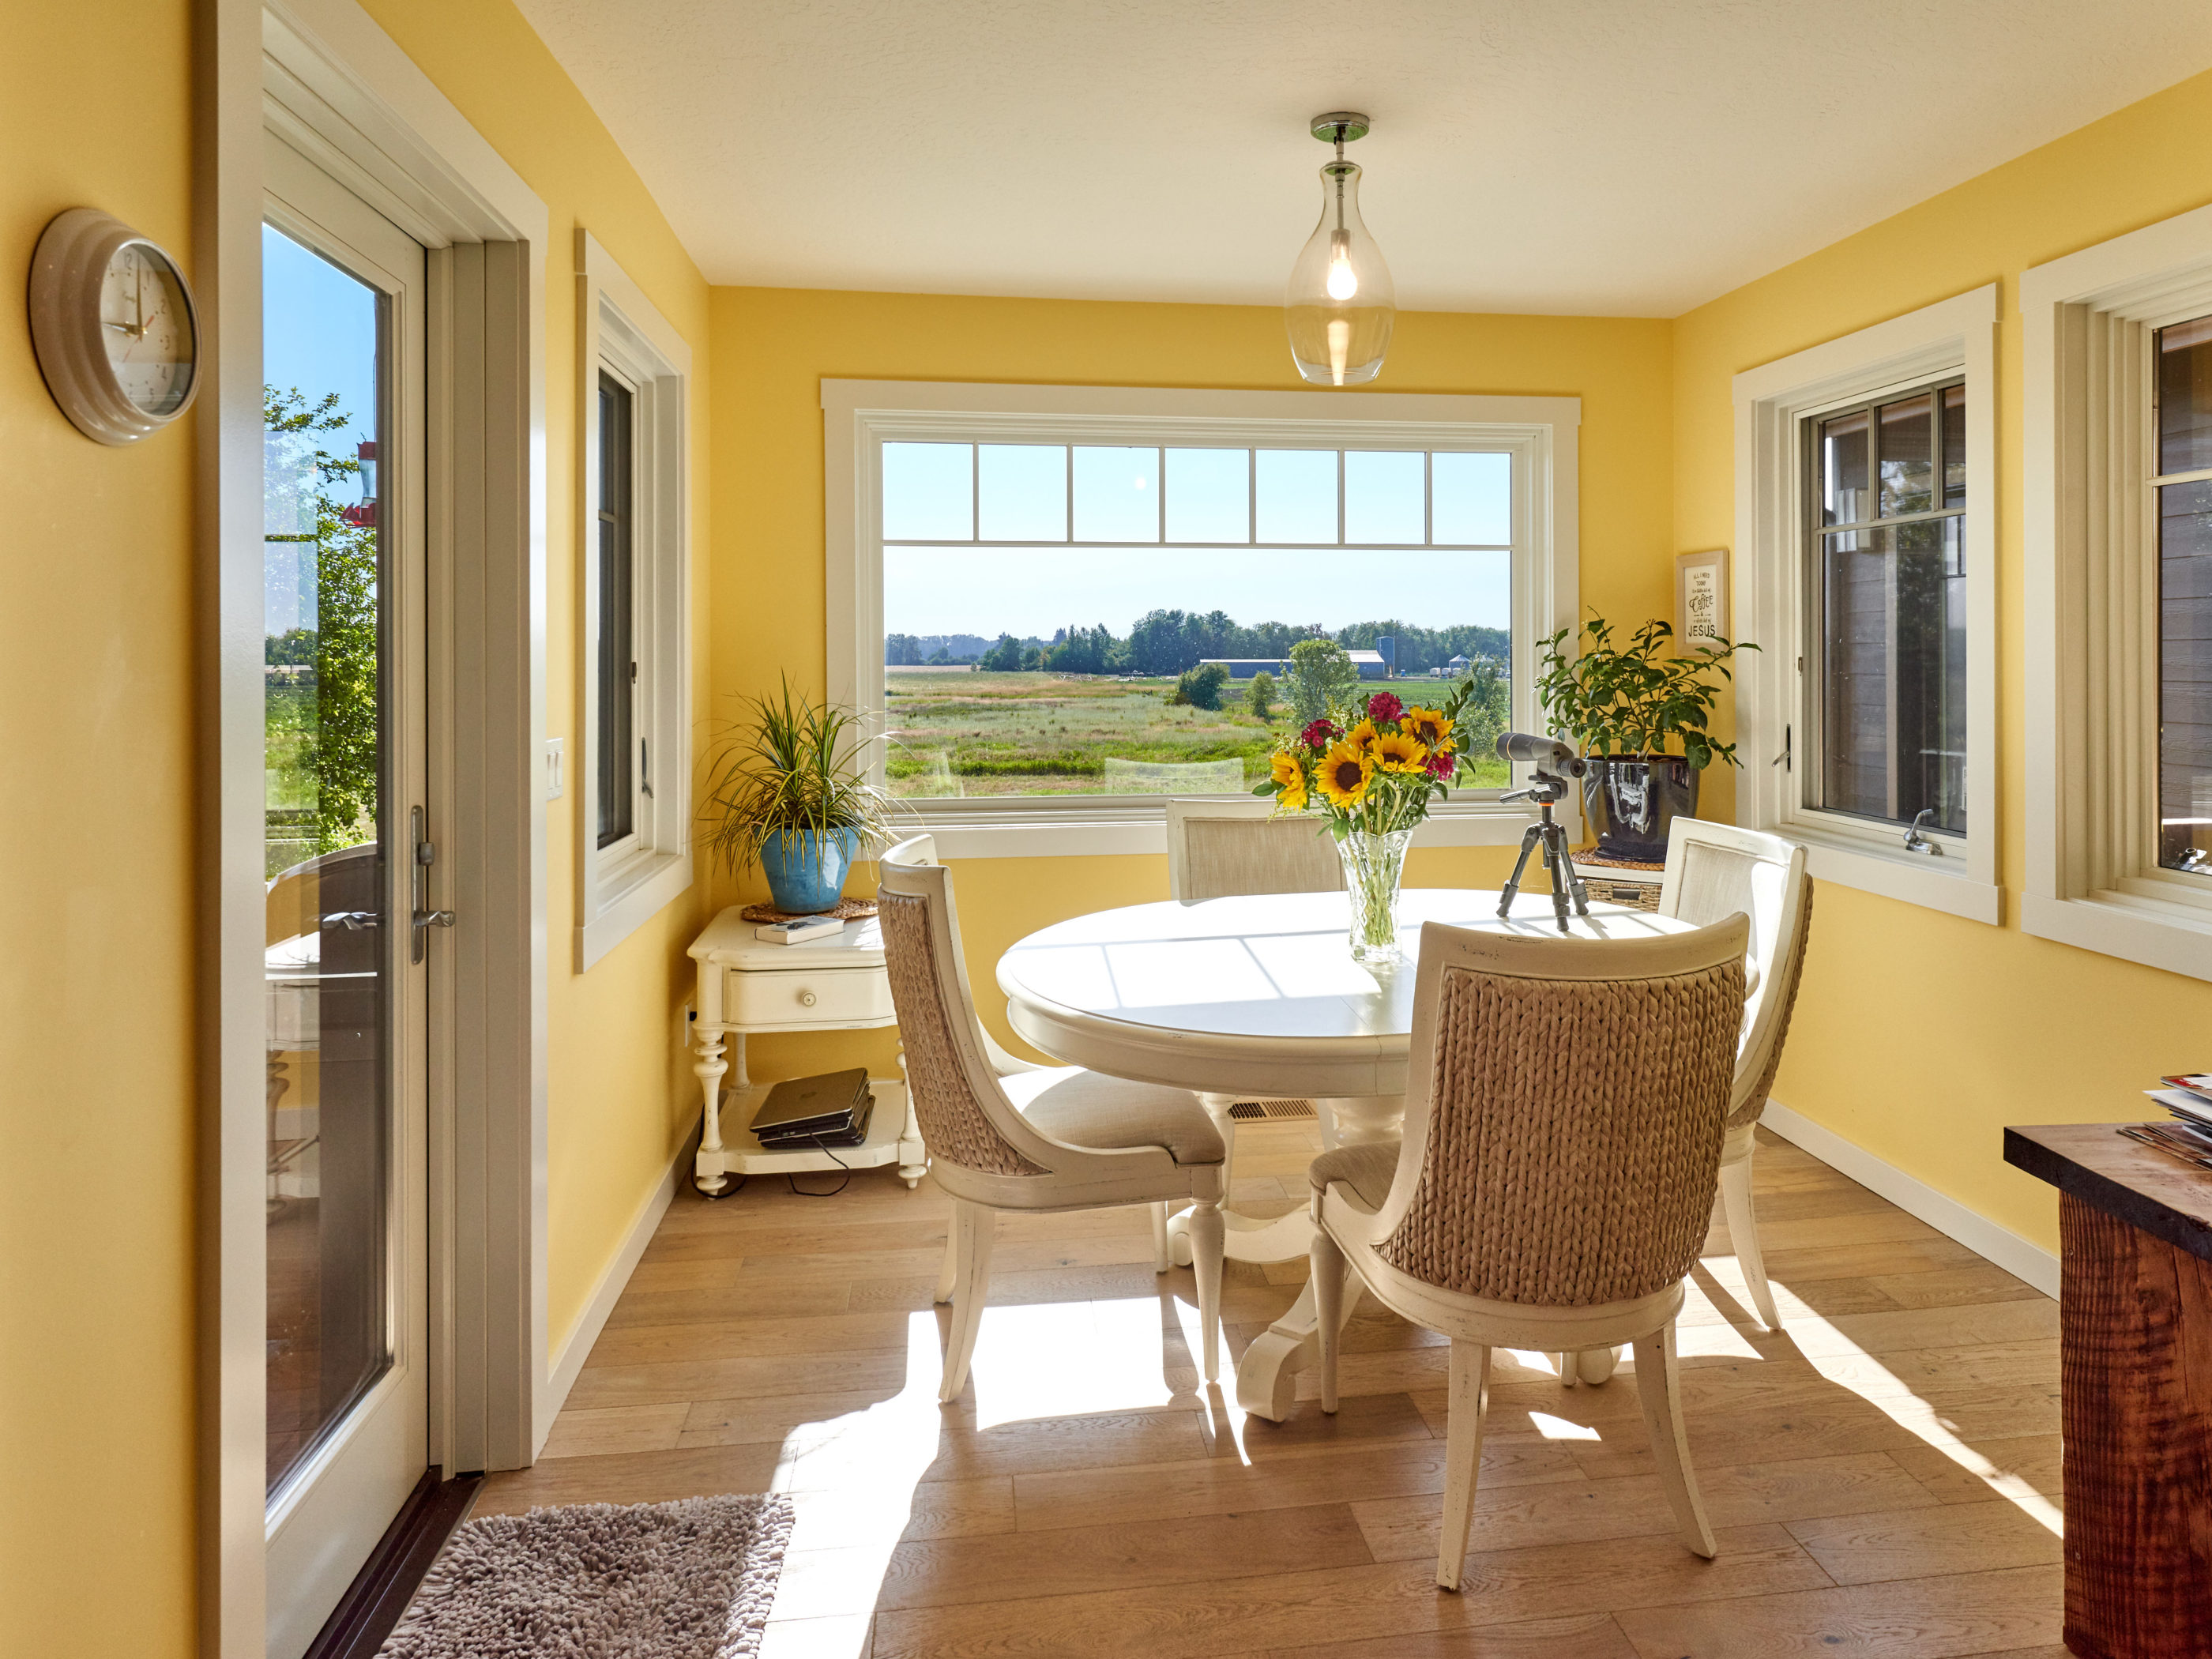 dining area with bright yellow walls and white dining furniture